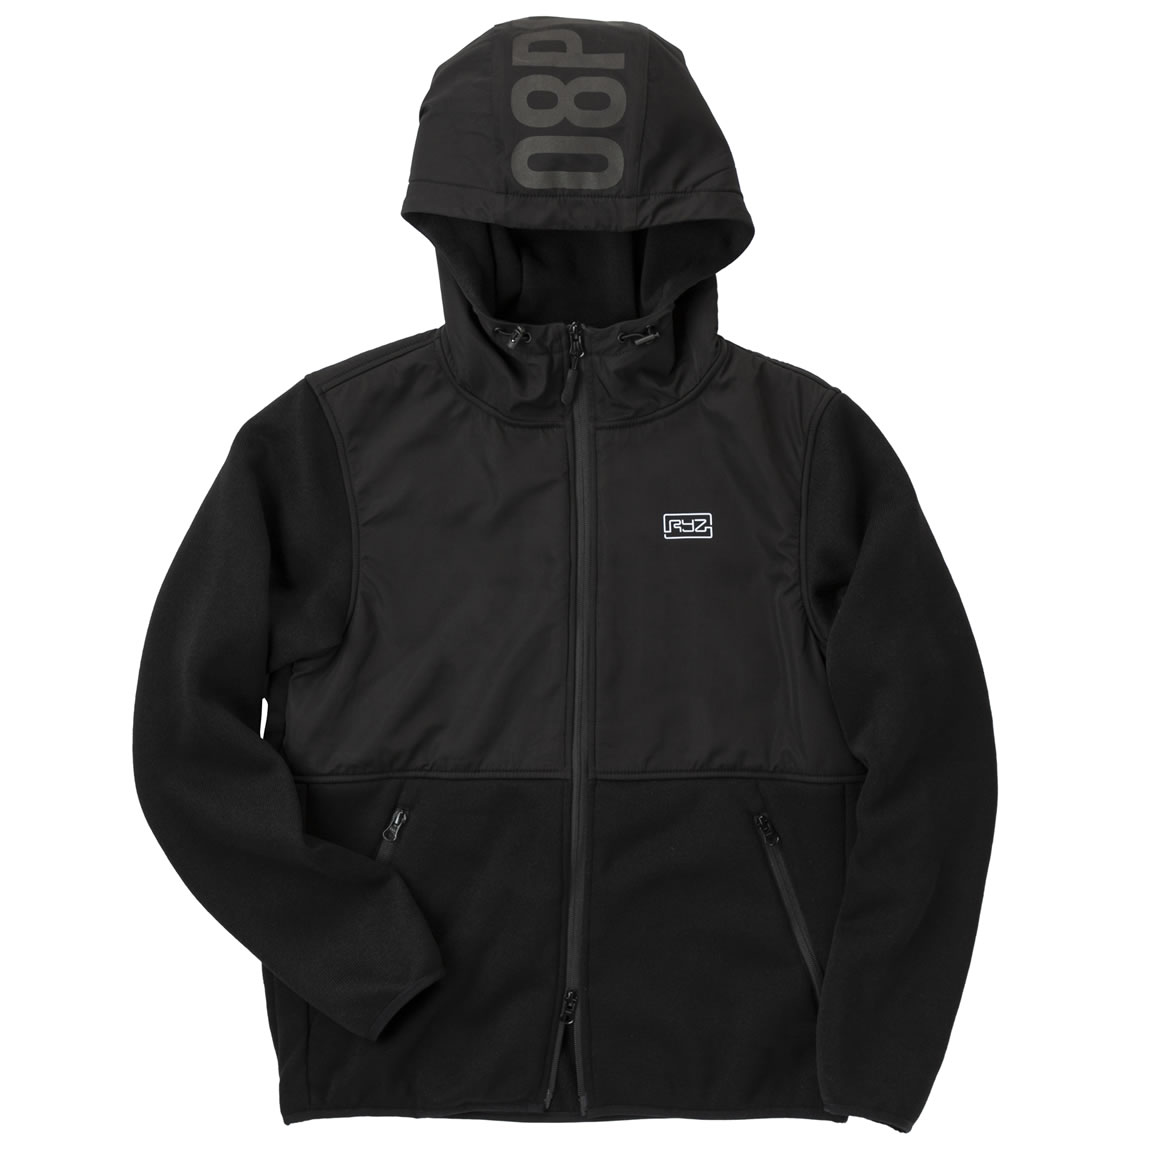 MOBILITY-KNIT-ZIP-BLK